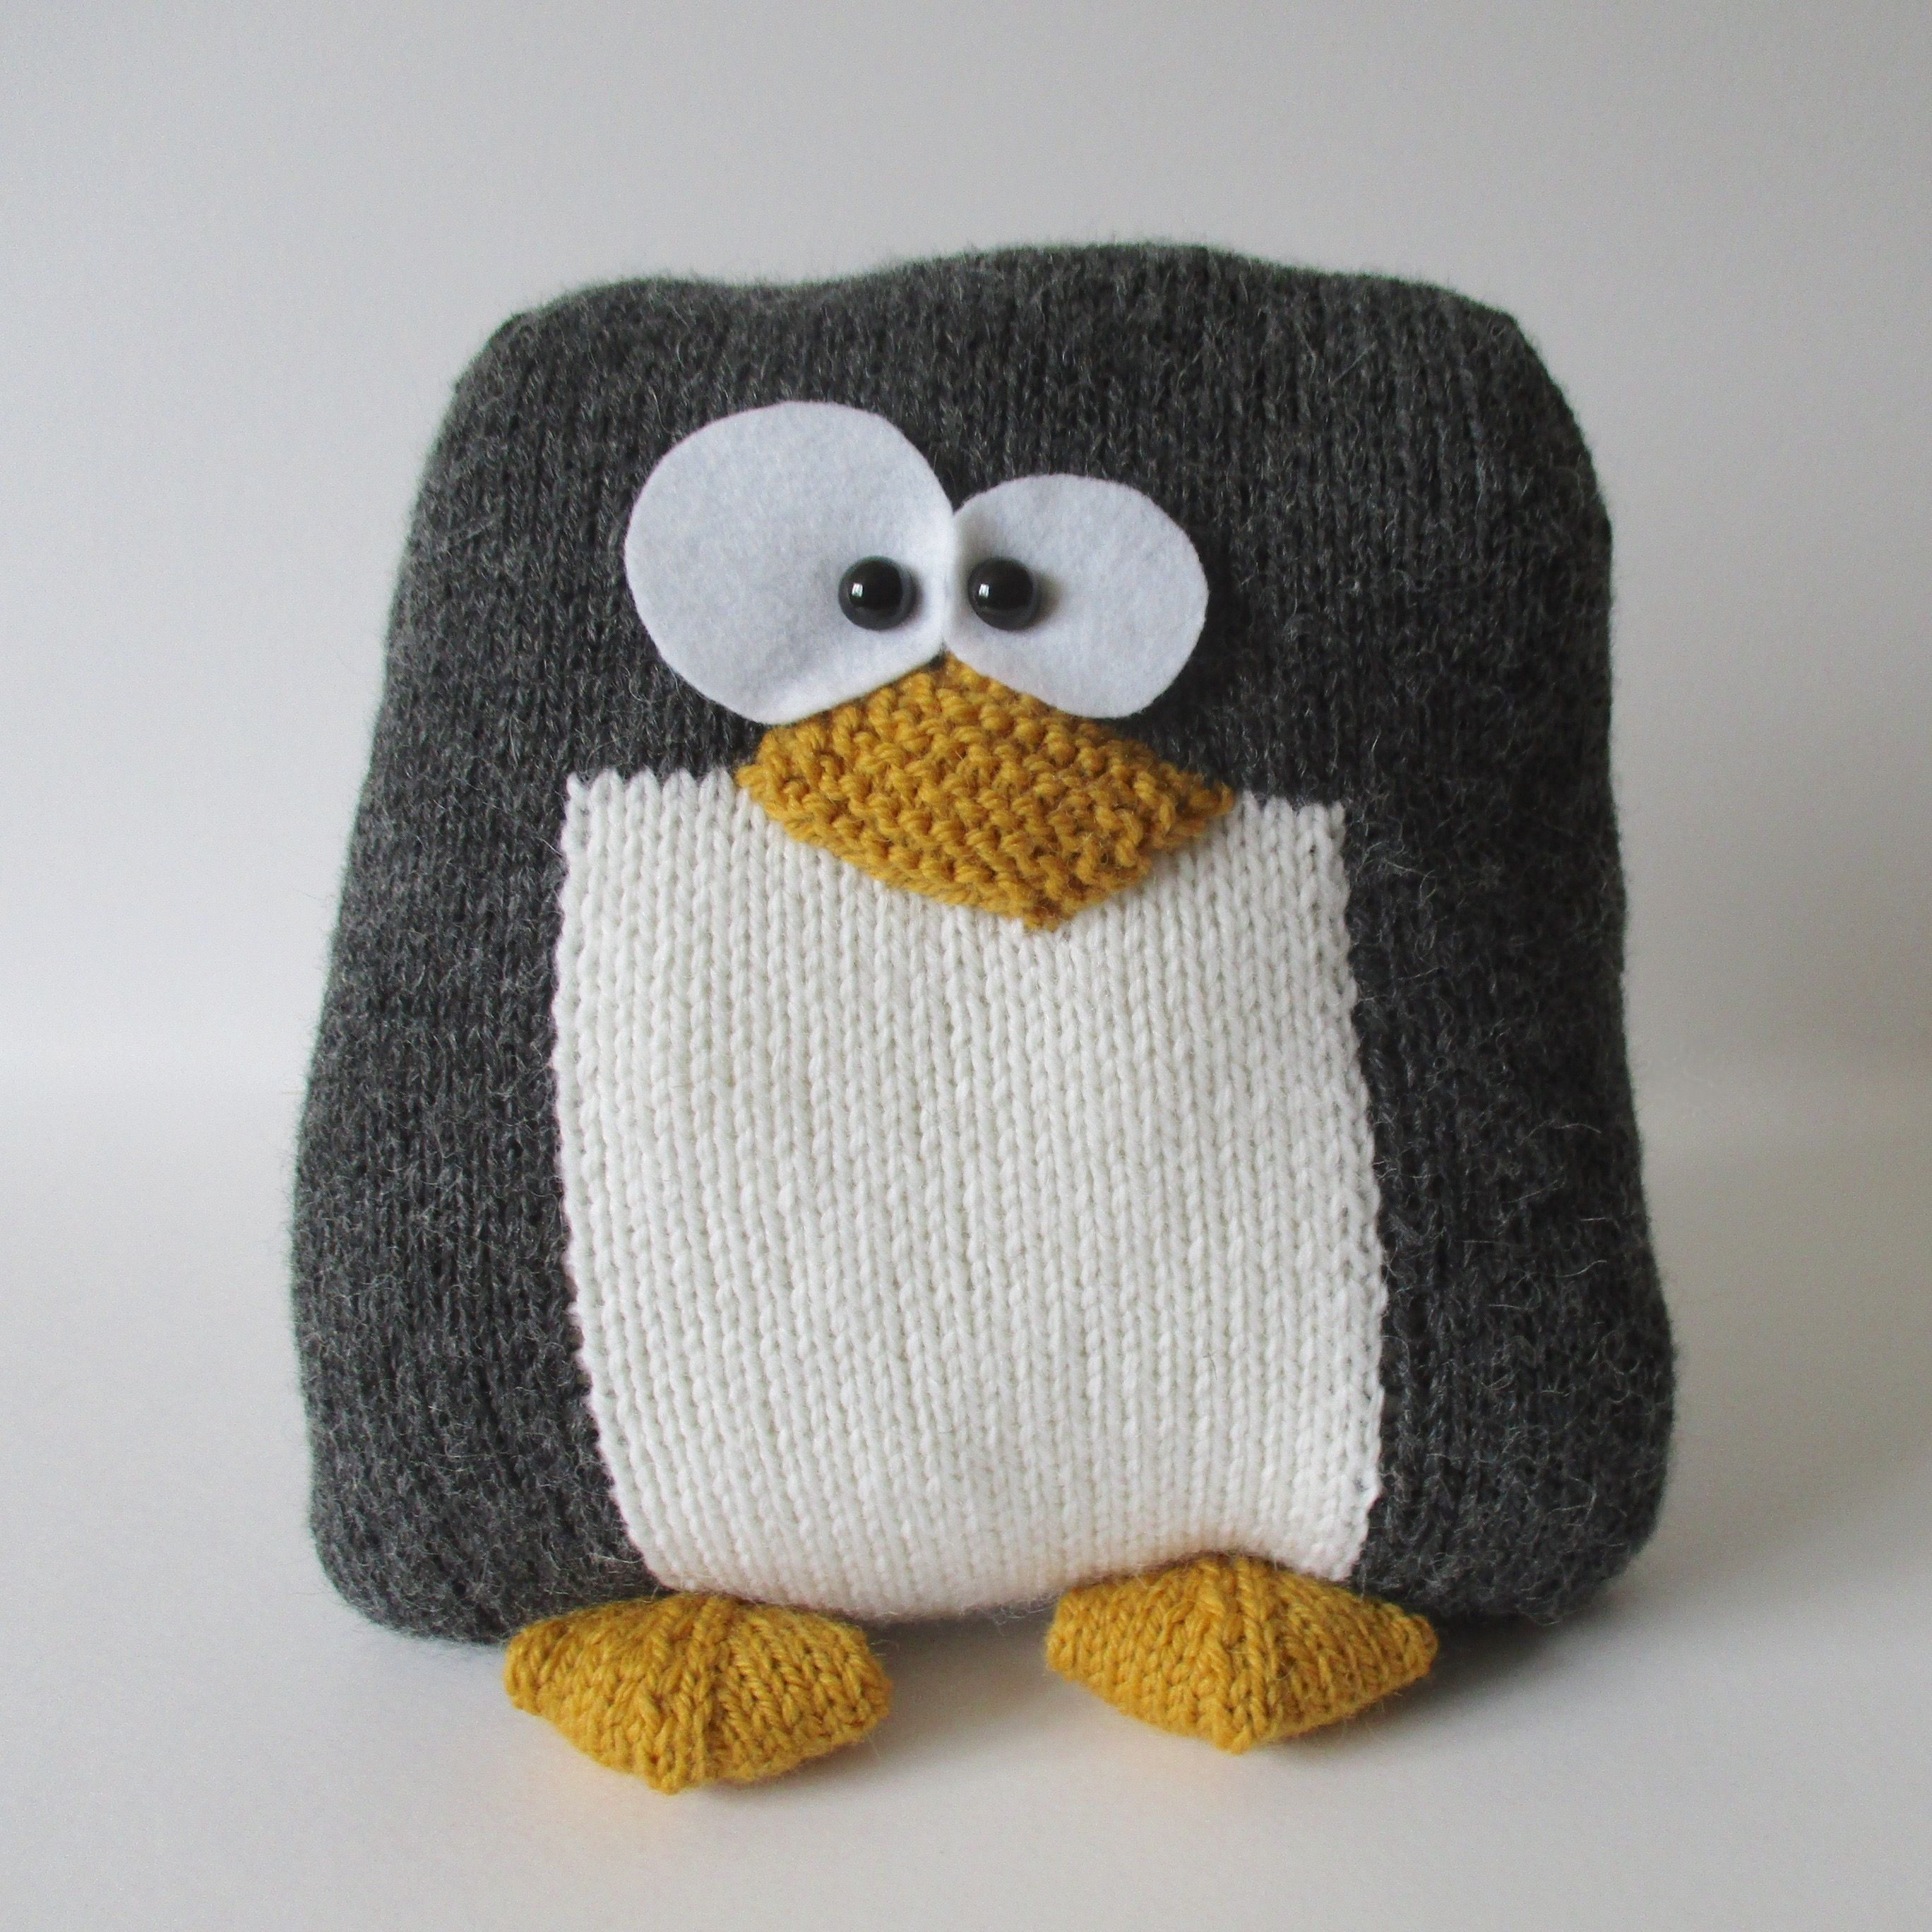 Penguin Cushion | Penguins, Cuddling and Knit patterns